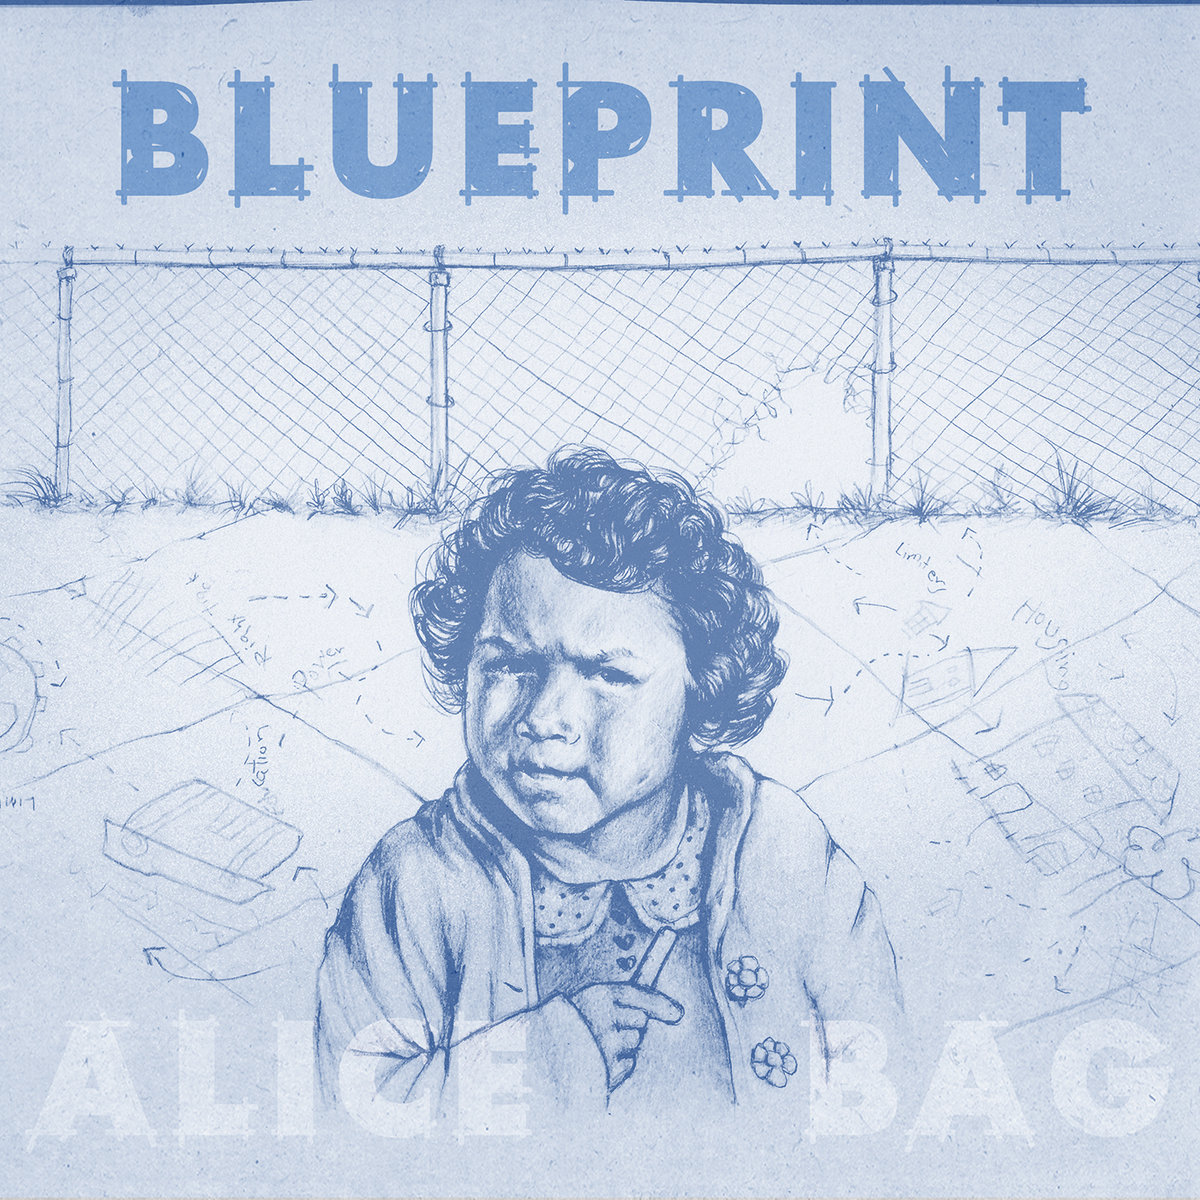 Blueprint alice bag blueprint by alice bag malvernweather Images